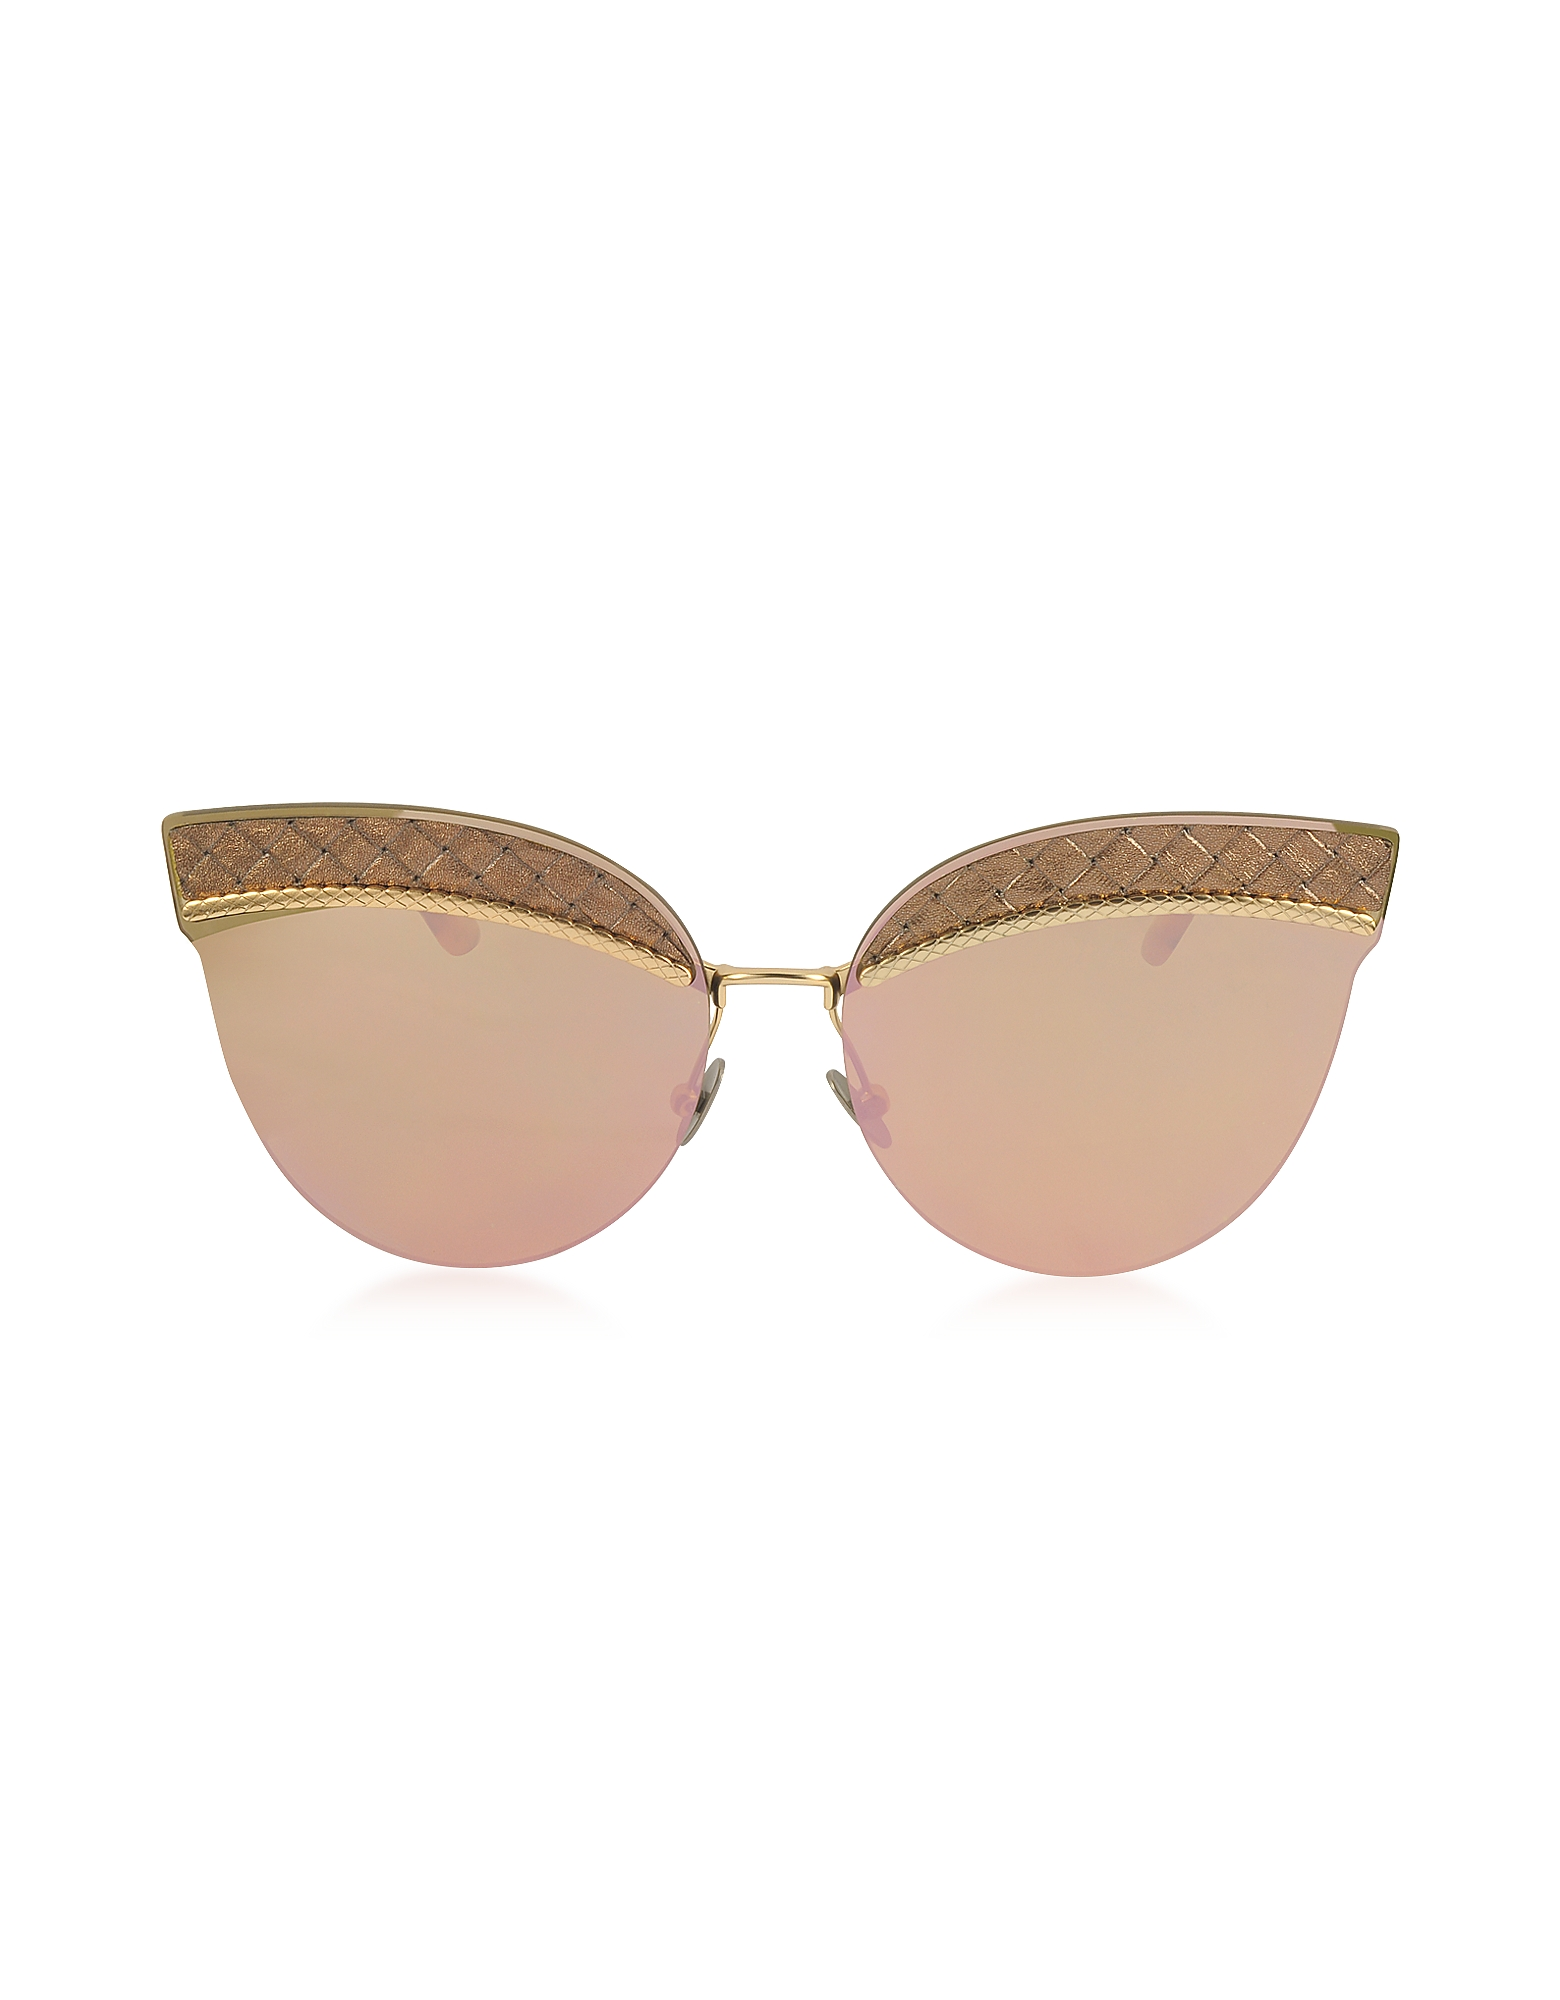 Bottega Veneta Designer Sunglasses, BV0101S Metal Cat-Eye Women's Sunglasses